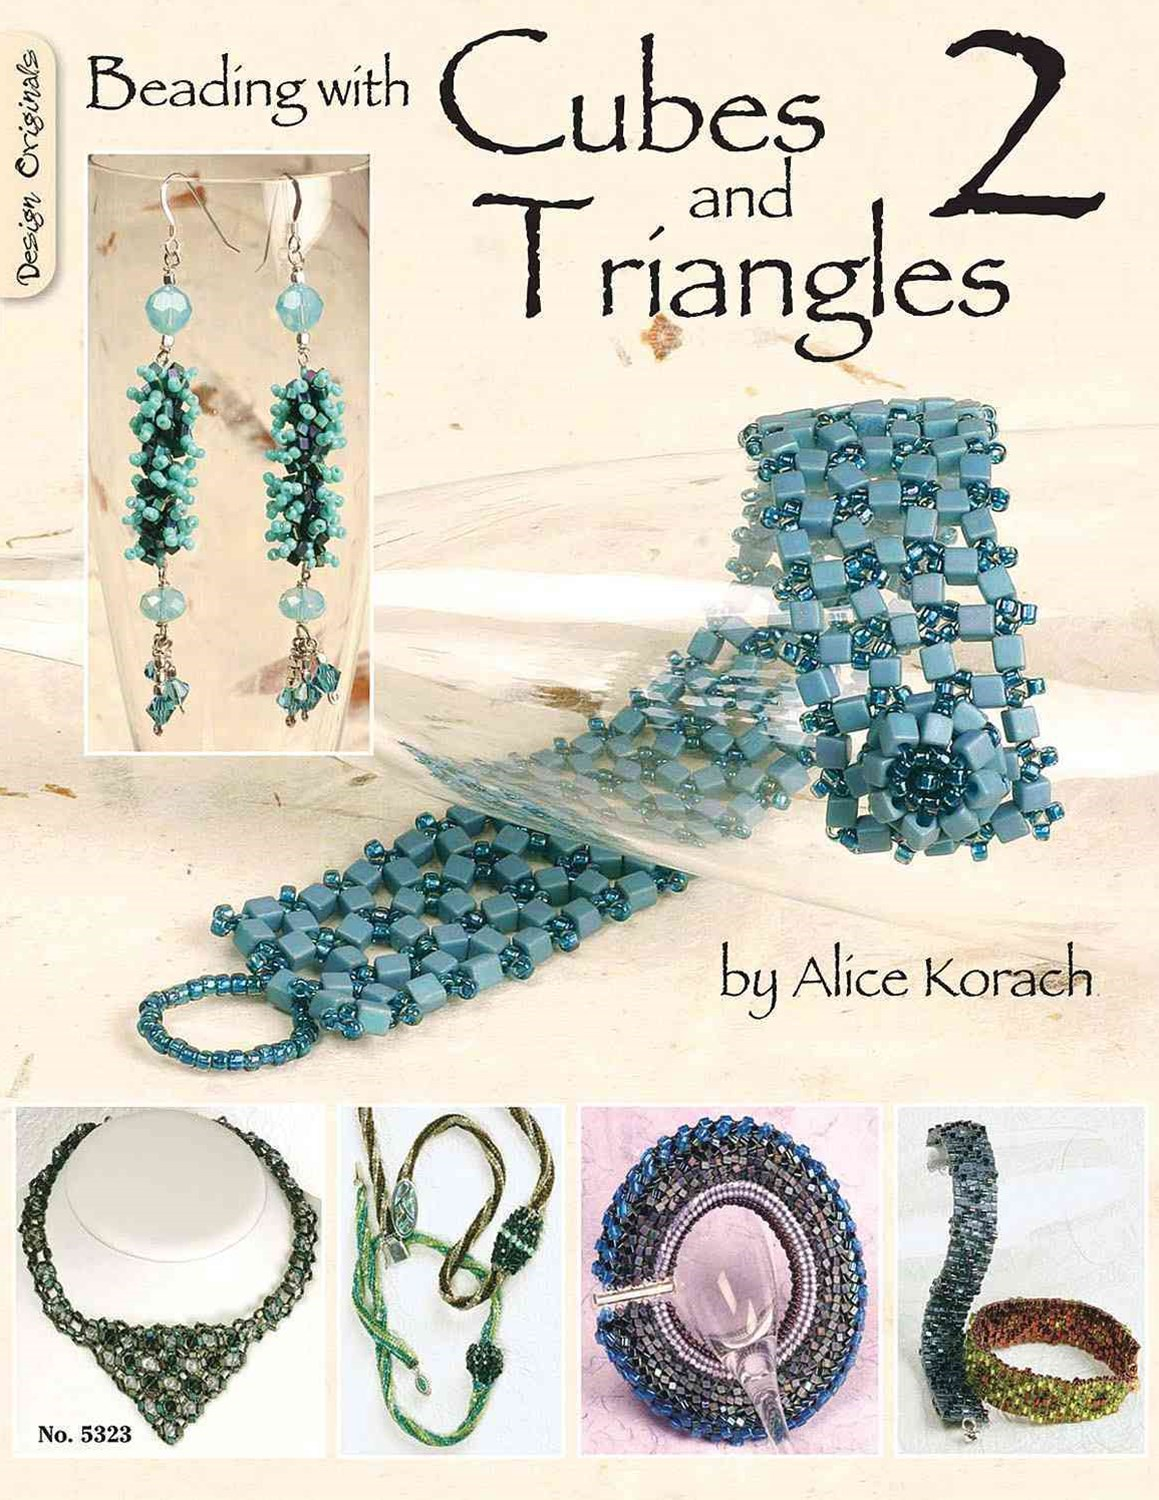 Beading with Cubes and Triangles 2